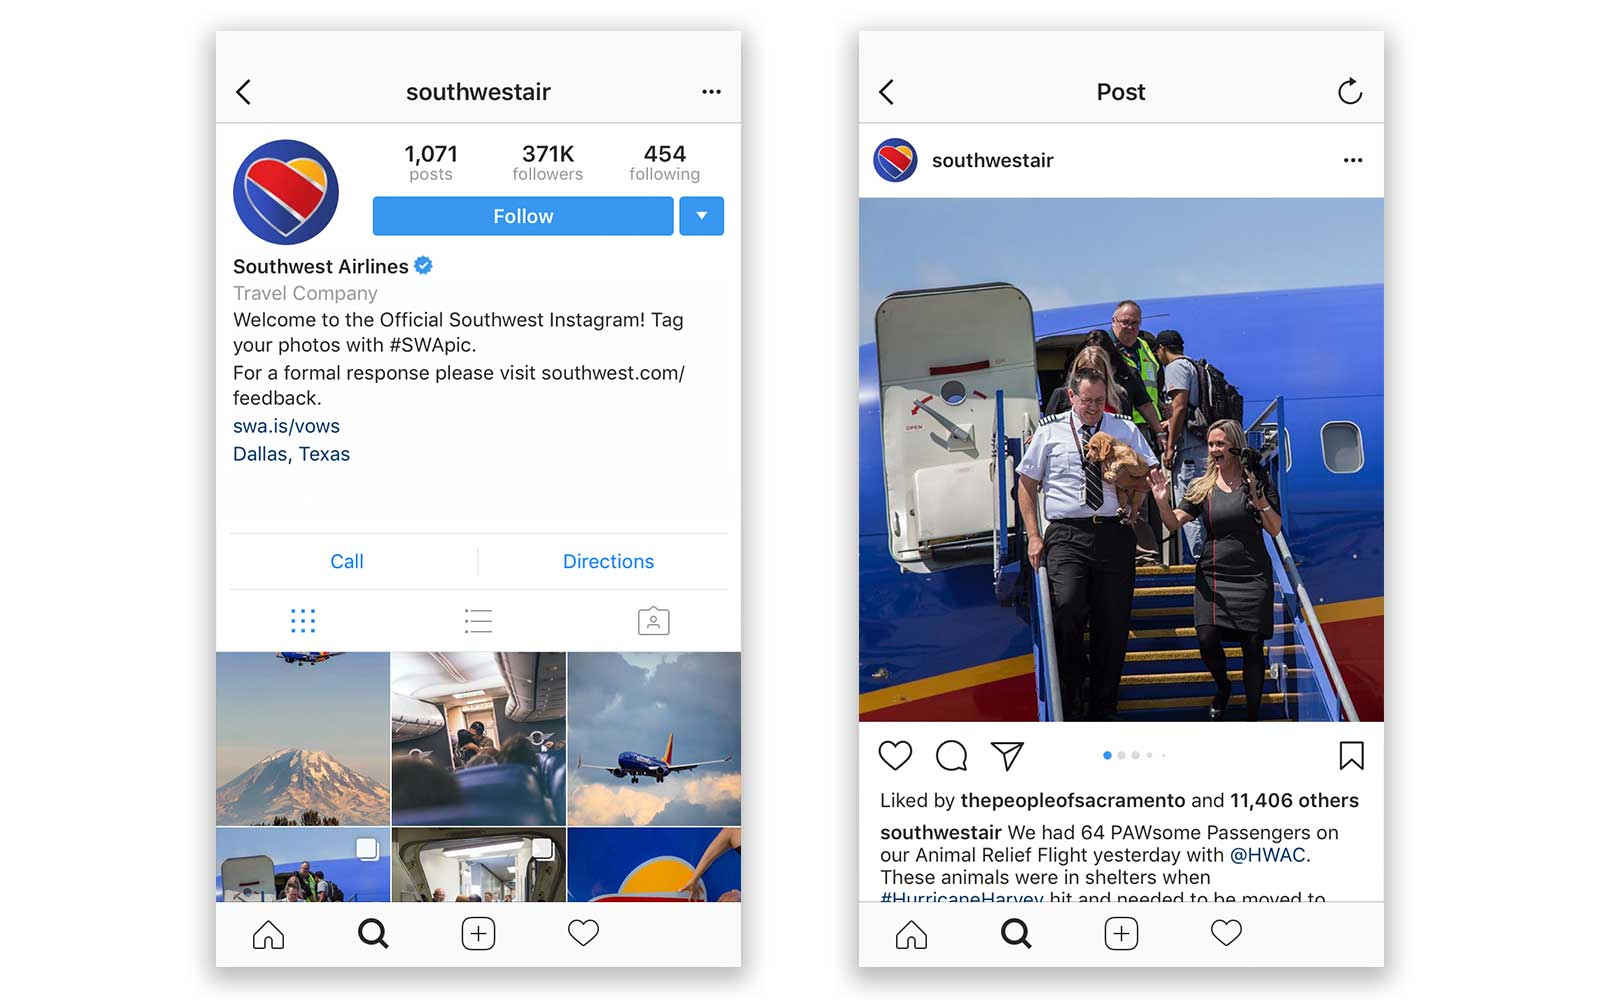 instagram account southwestair